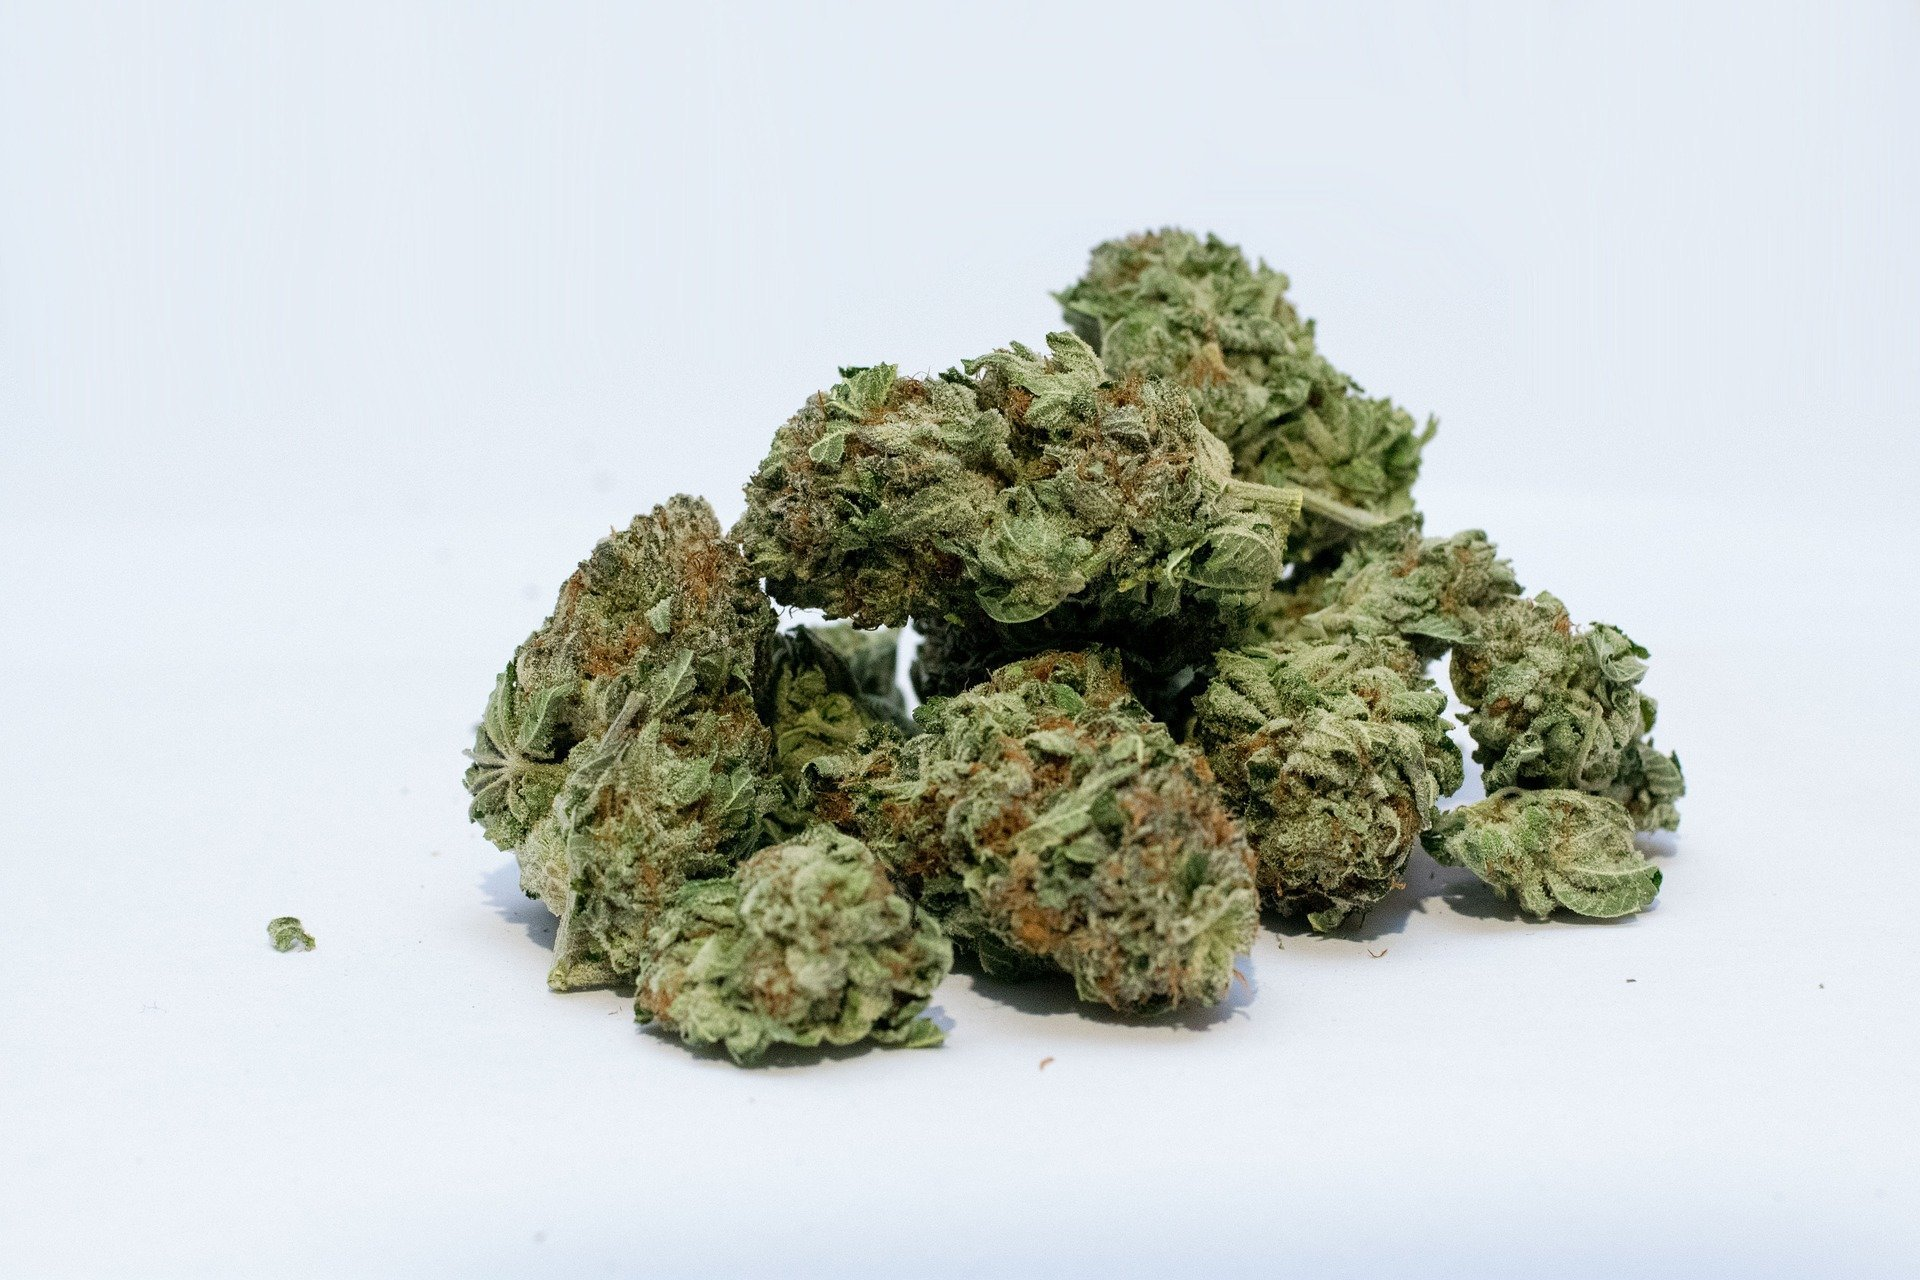 The new 'runner's high'? MJ users often mix weed, workouts